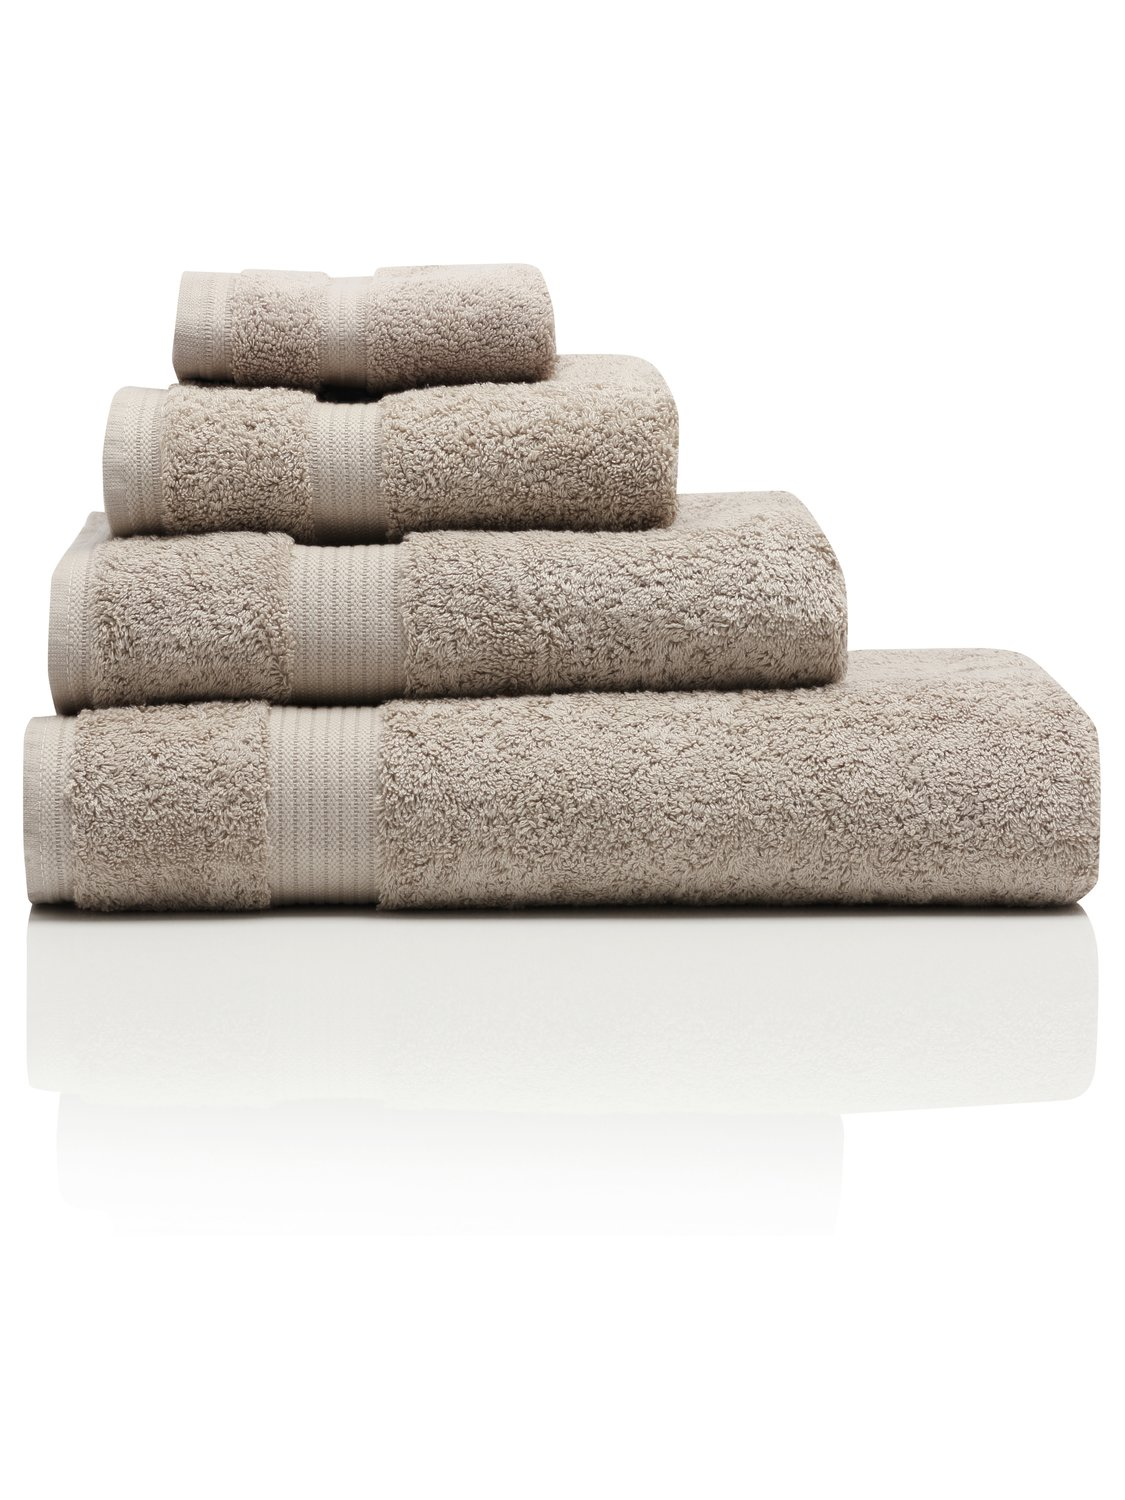 Image of 100% Combed Cotton 580Gsm Luxury Soft And Absorbent Bath Sheet - Beige